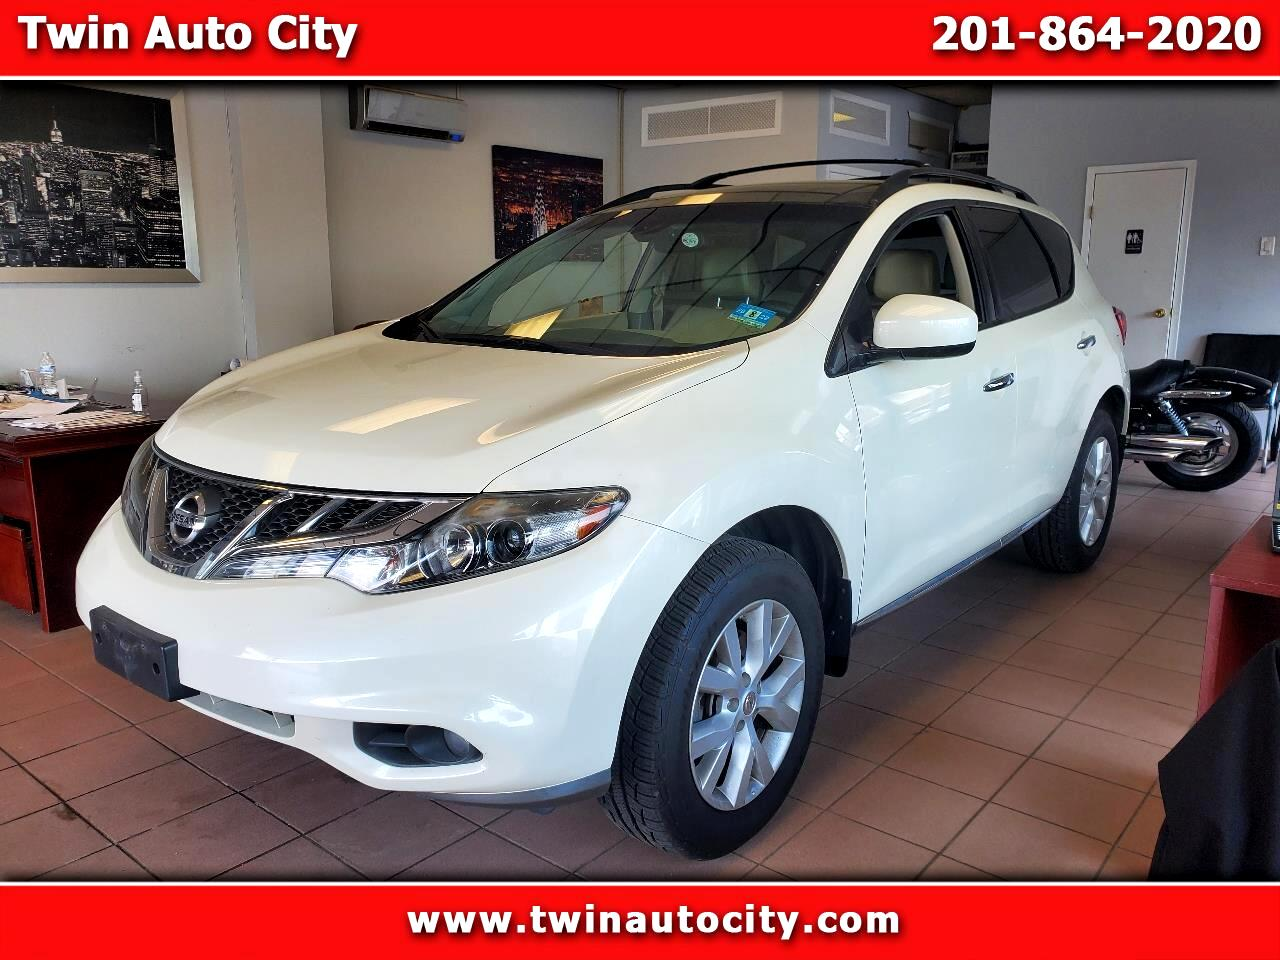 Nissan Murano 2WD 4dr SL 2013